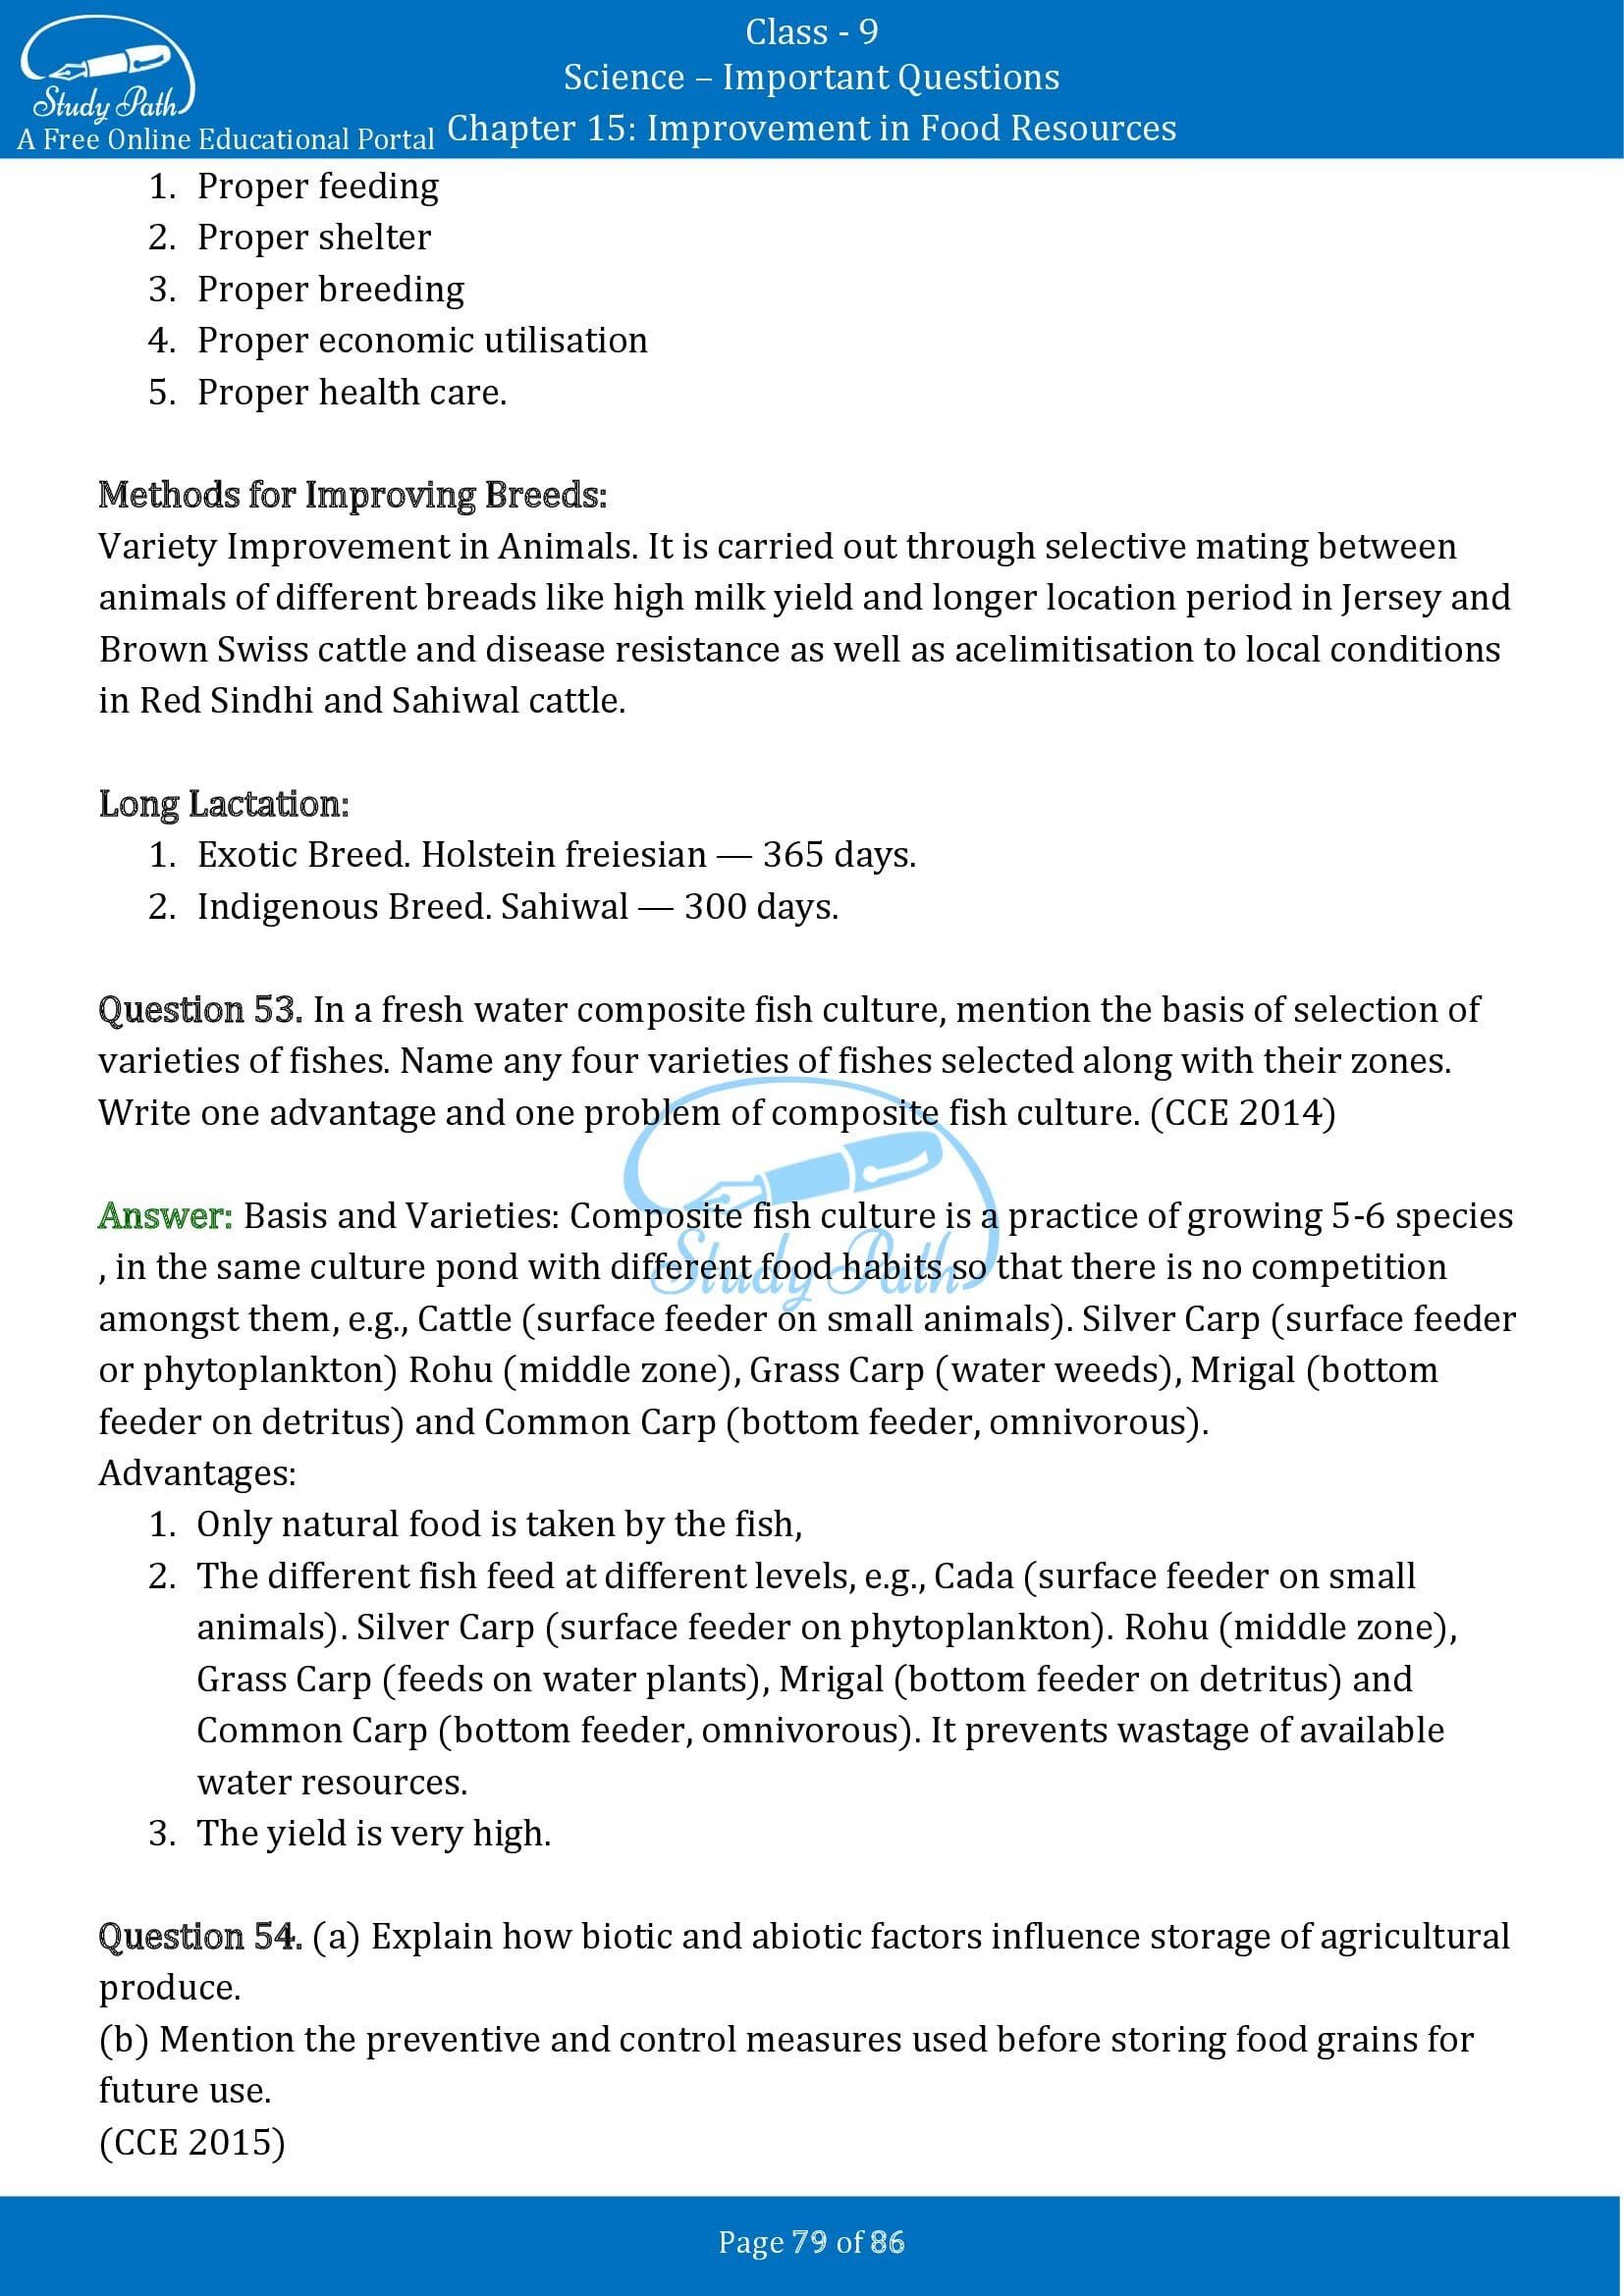 Important Questions for Class 9 Science Chapter 15 Improvement in Food Resources 00079